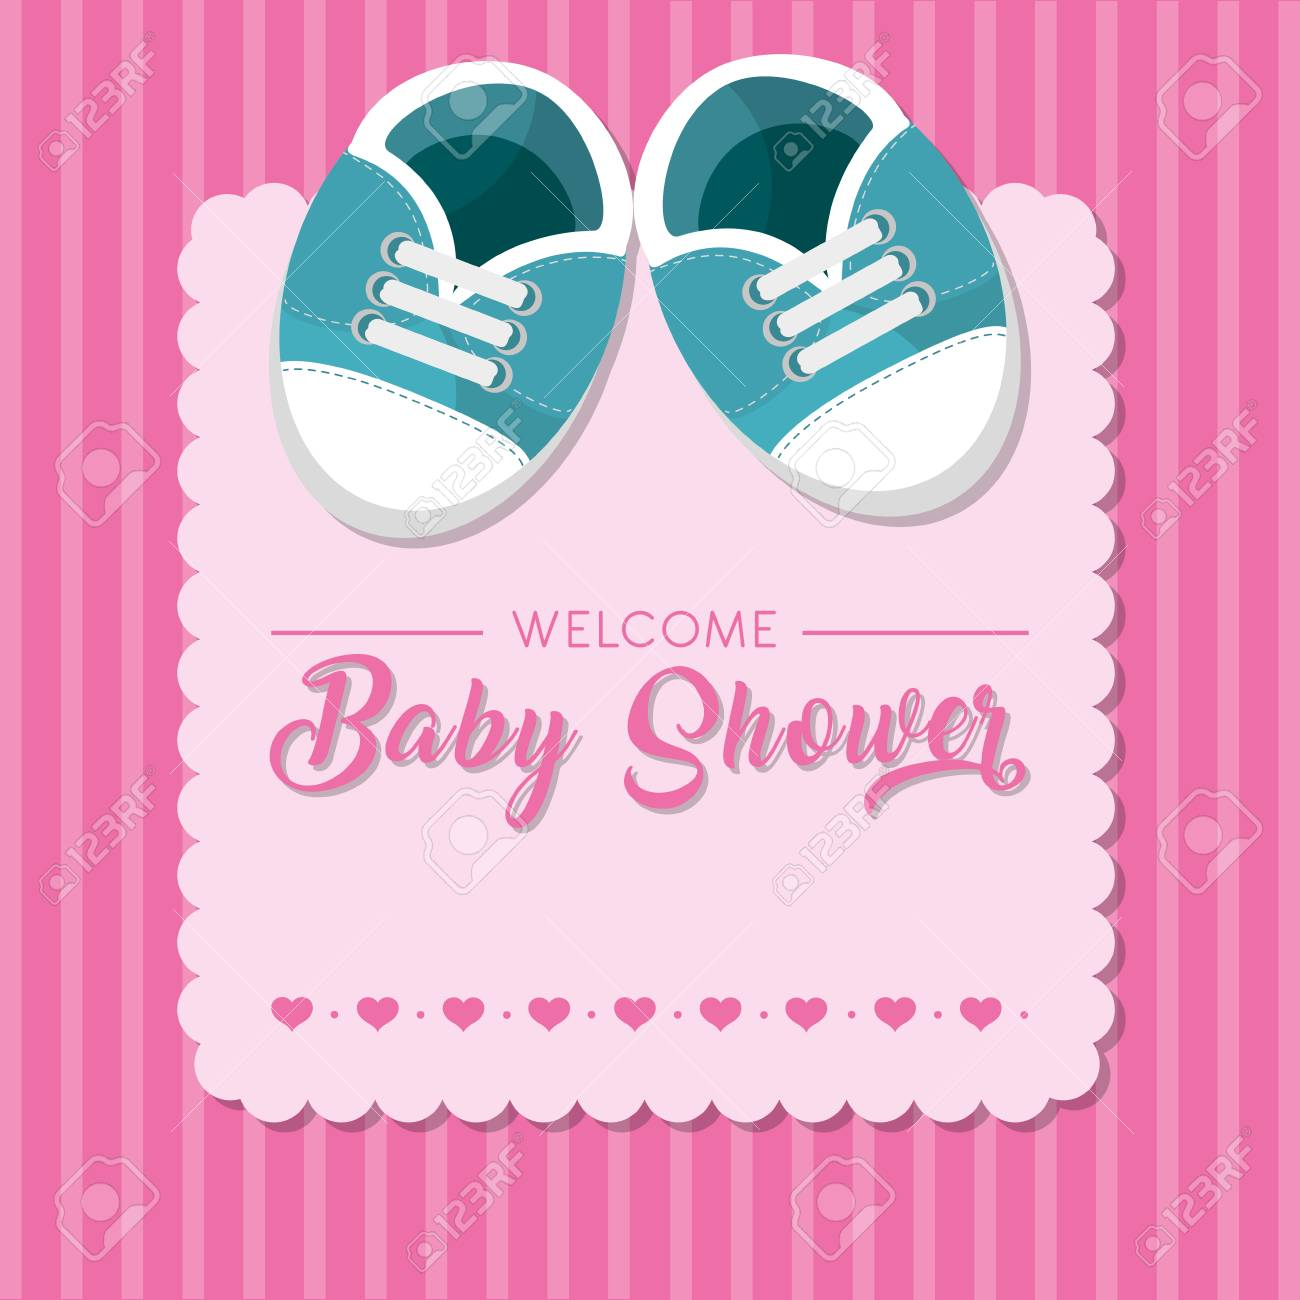 Baby Shower Design With Baby Shoes Vector Illustration Royalty Free Cliparts Vectors And Stock Illustration Image 92412655